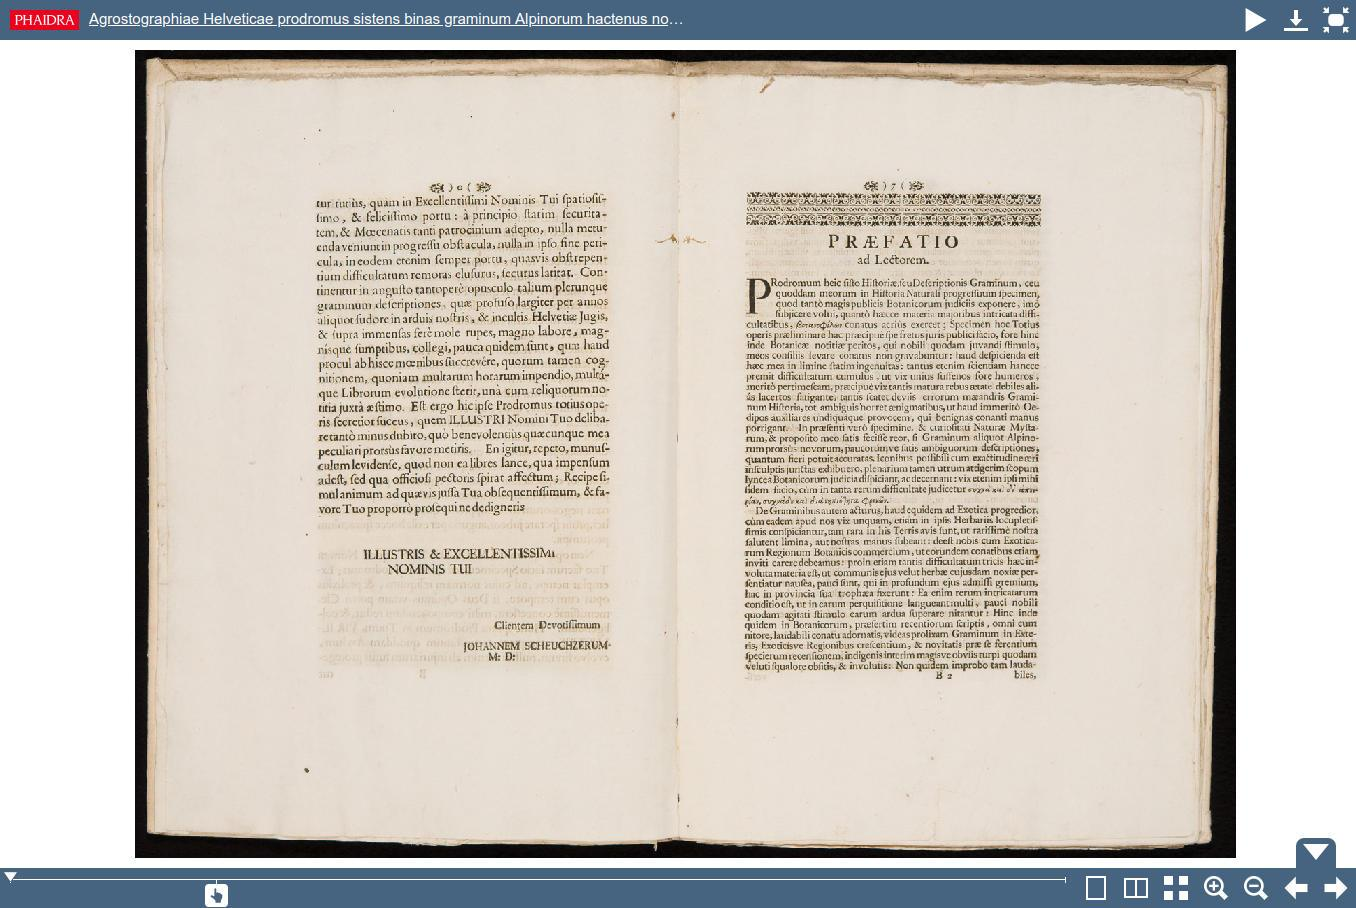 Image: a book displayed in the Phaidra Book Viewer.